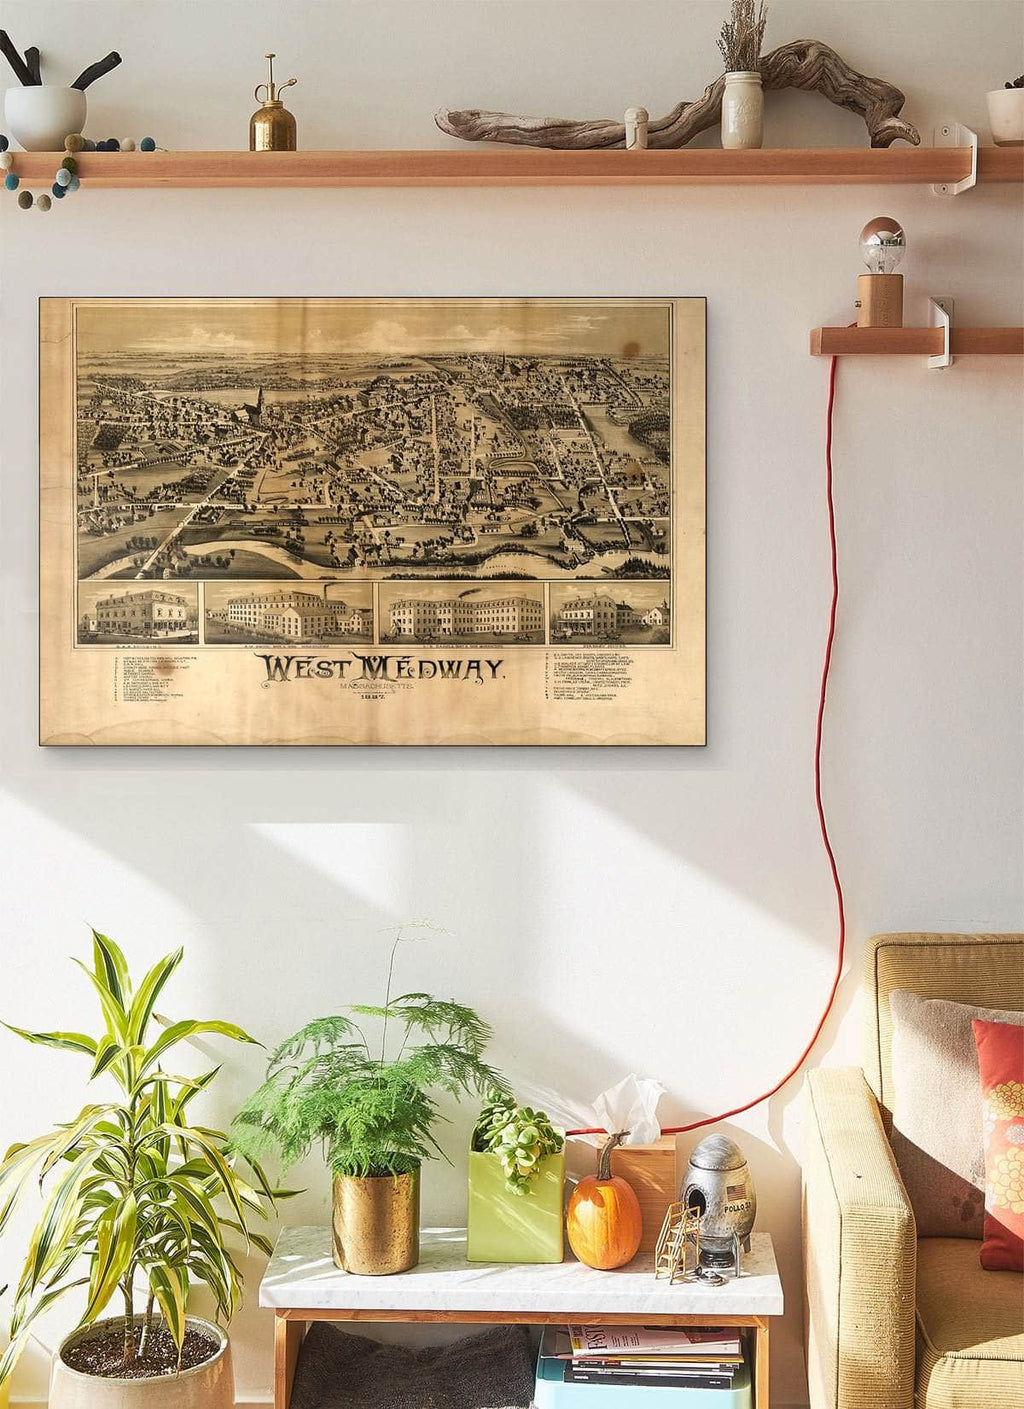 West Medway Massachusetts Vintage Map